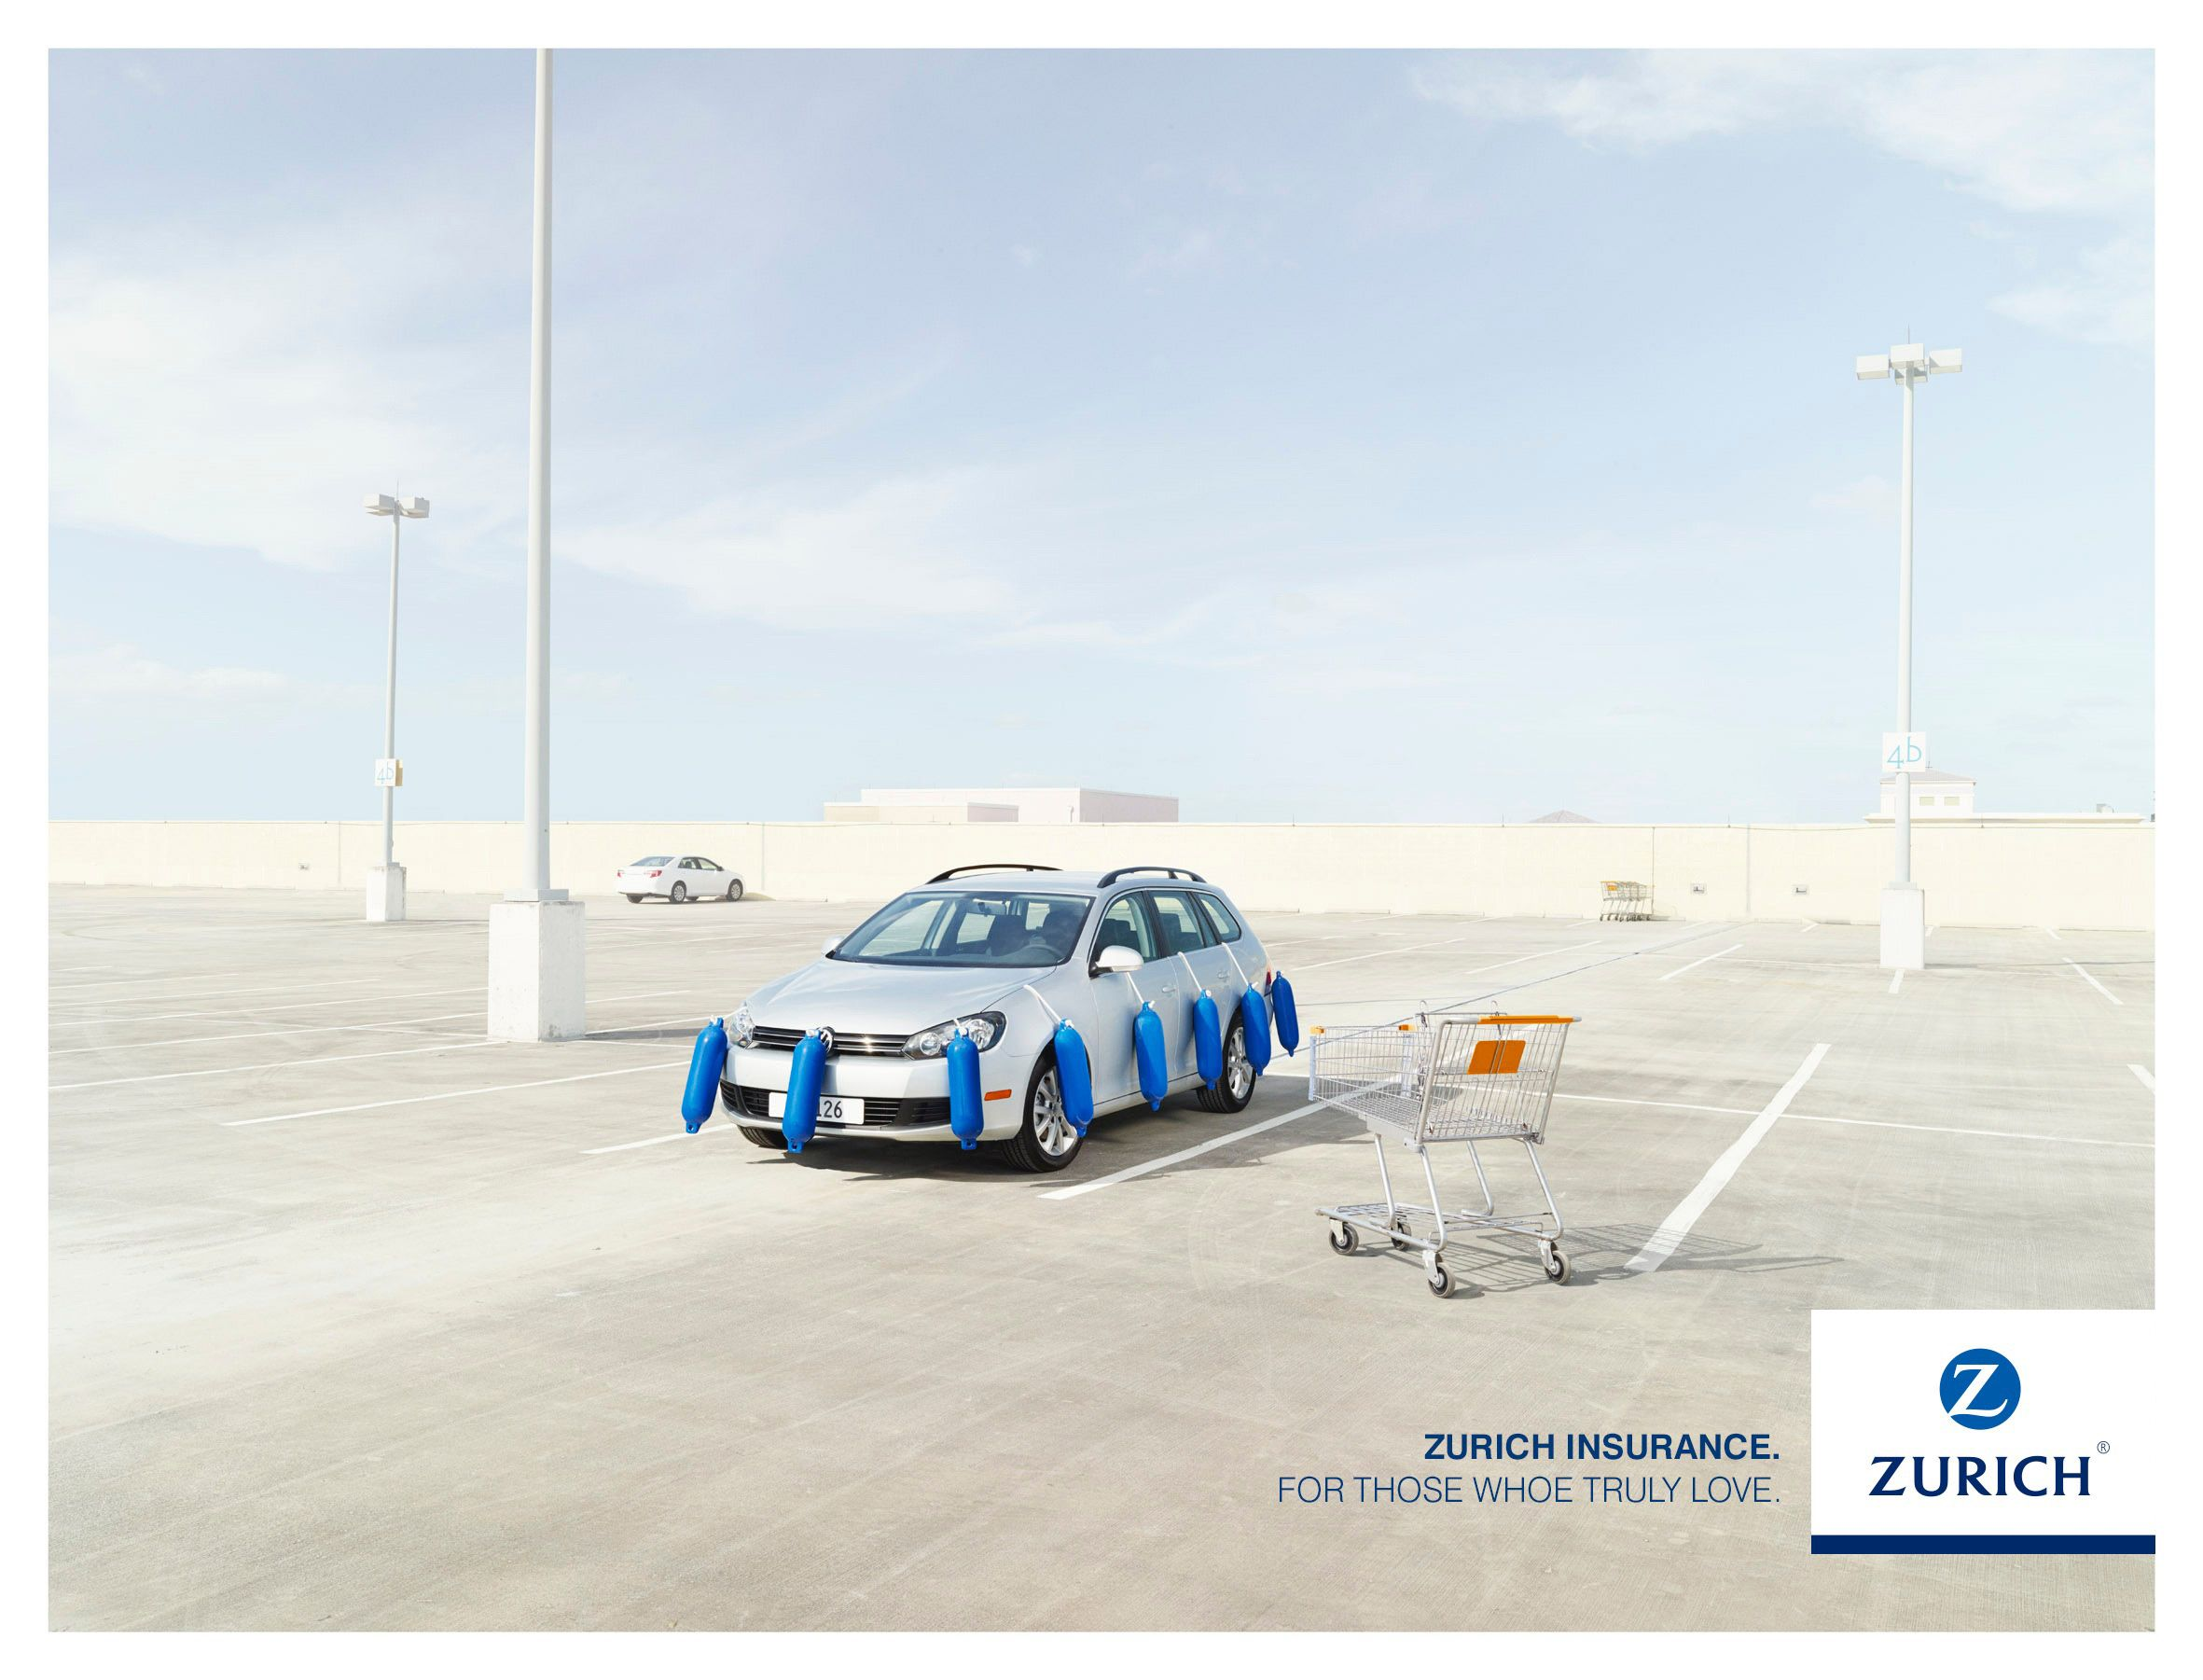 Adeevee Zurich Insurance Trolley Ad Of The World Car